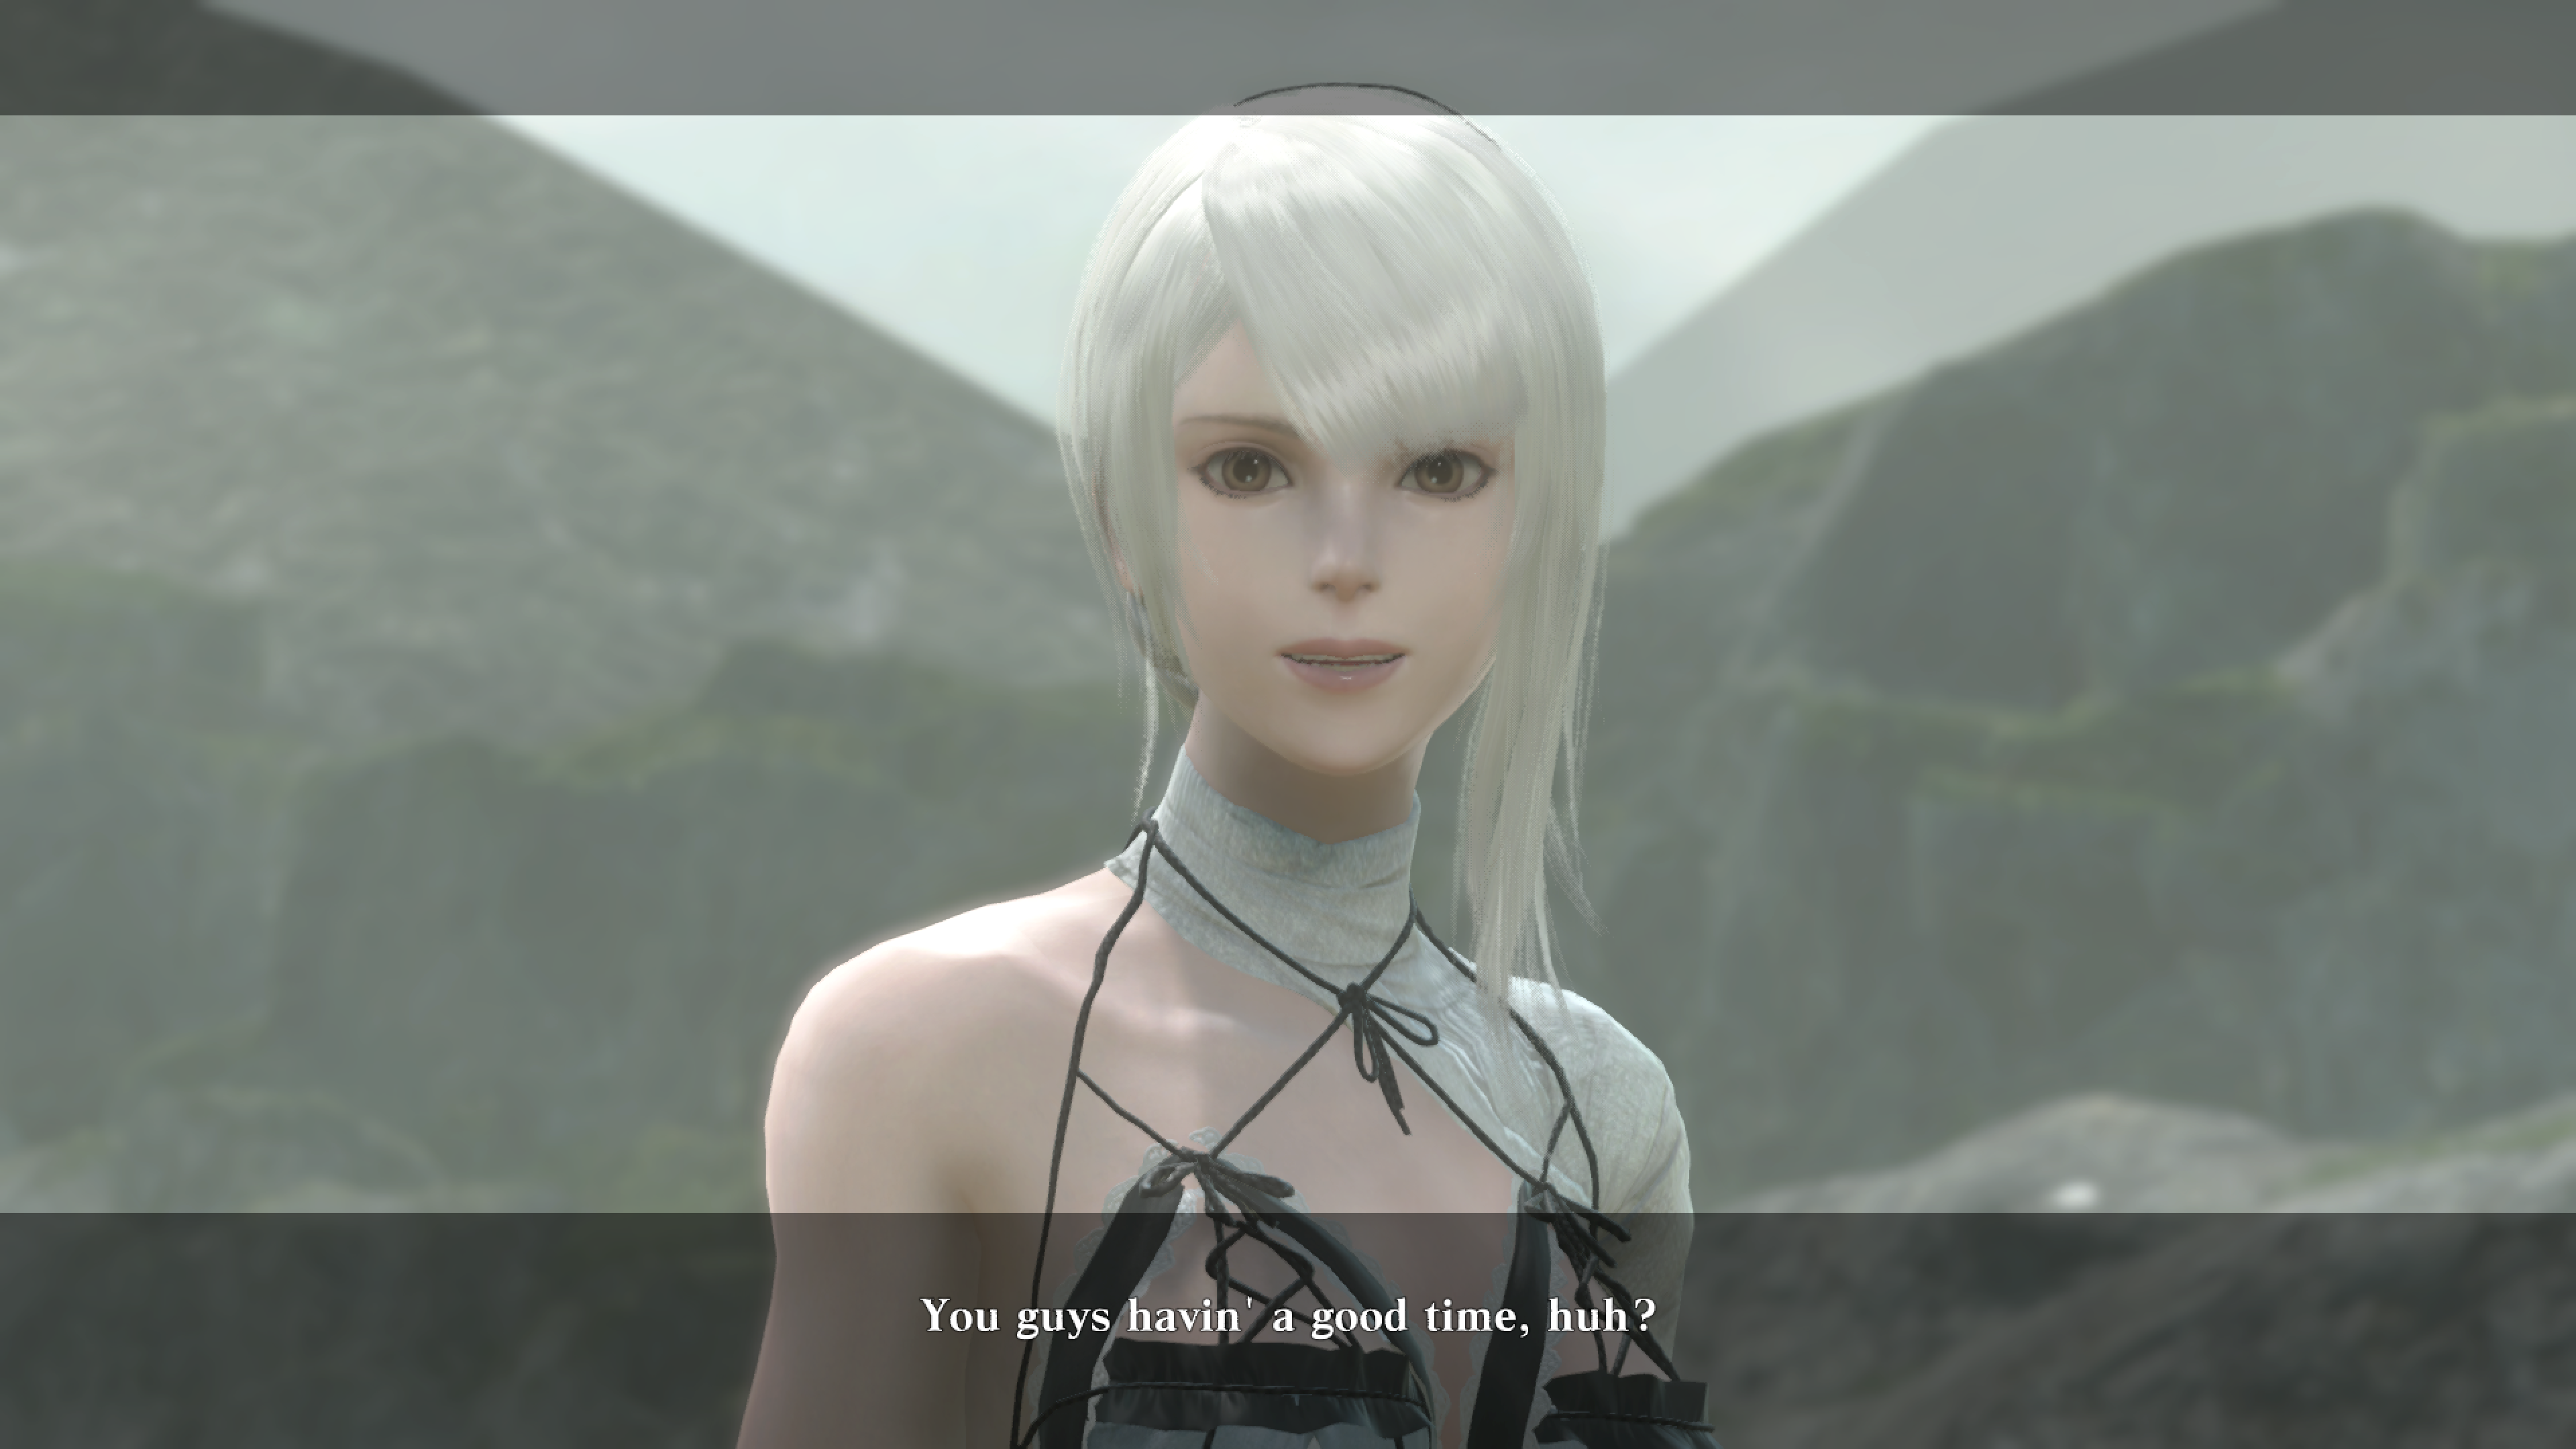 NieR Replicant ver.1.22474487139… Review – What's The Square Root of 1.5?